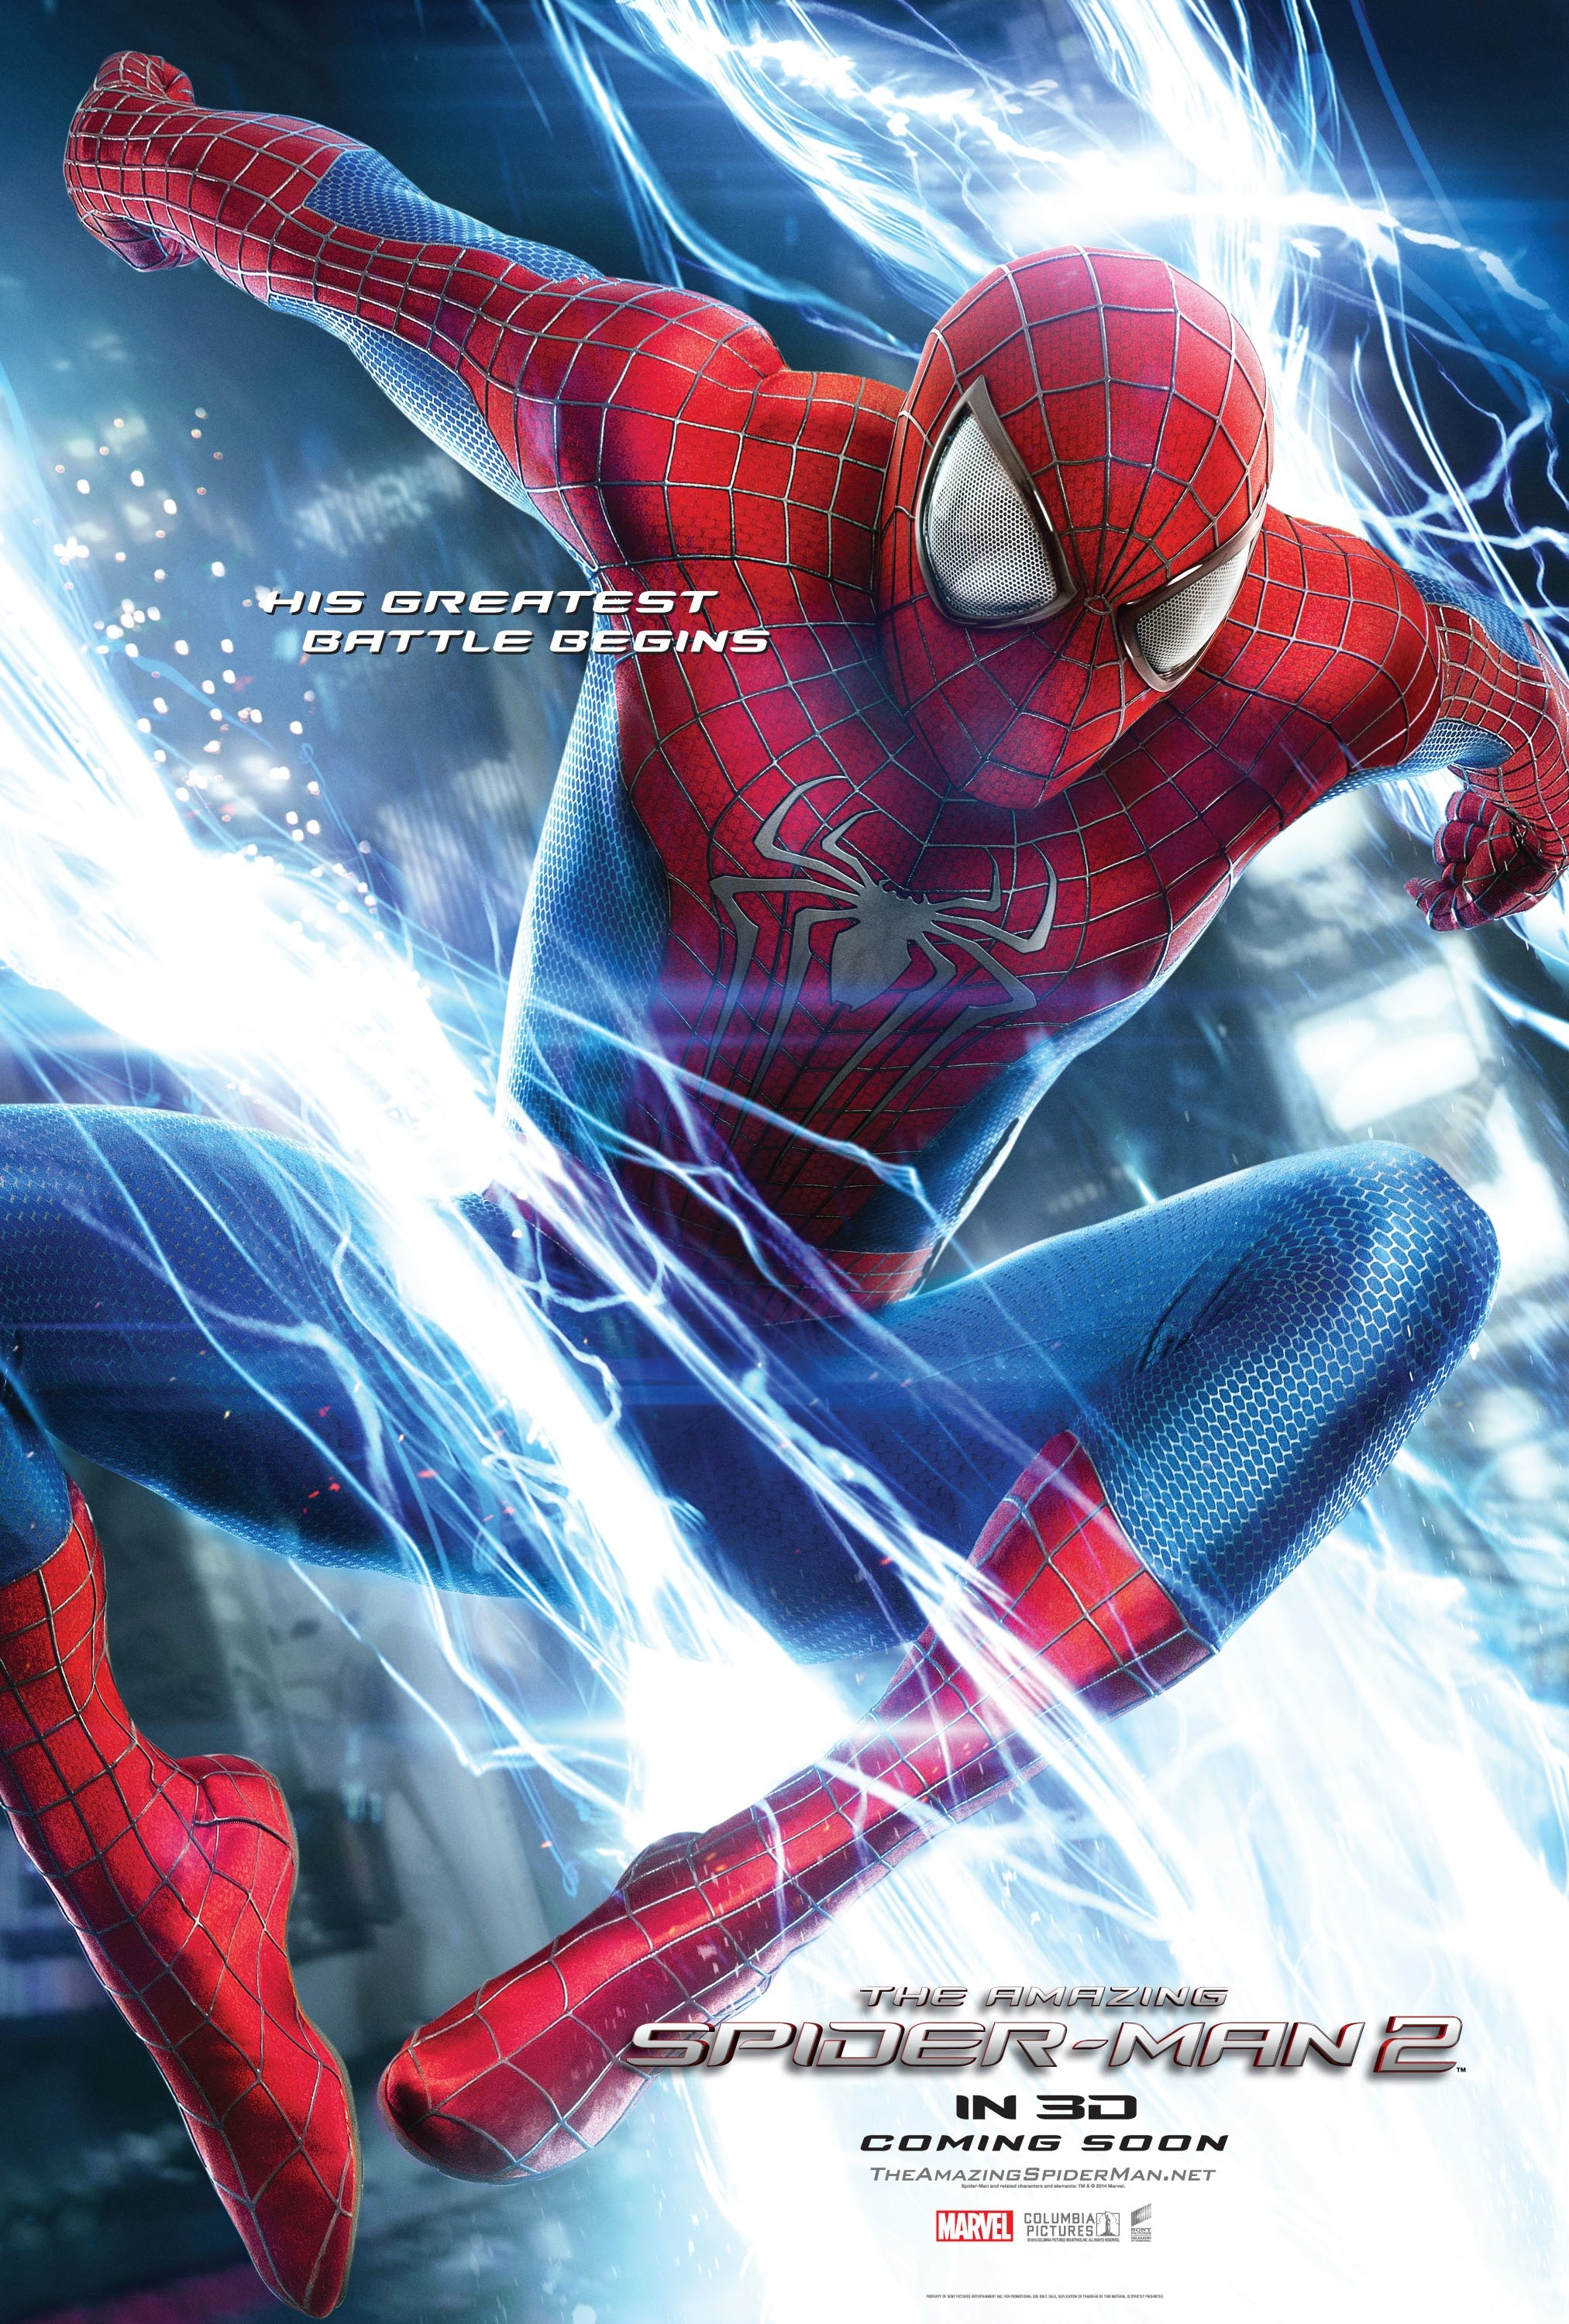 The Amazing Spider-Man 2-Official Poster Banner PROMO POSTER XXLG-20JANEIRO2014-01